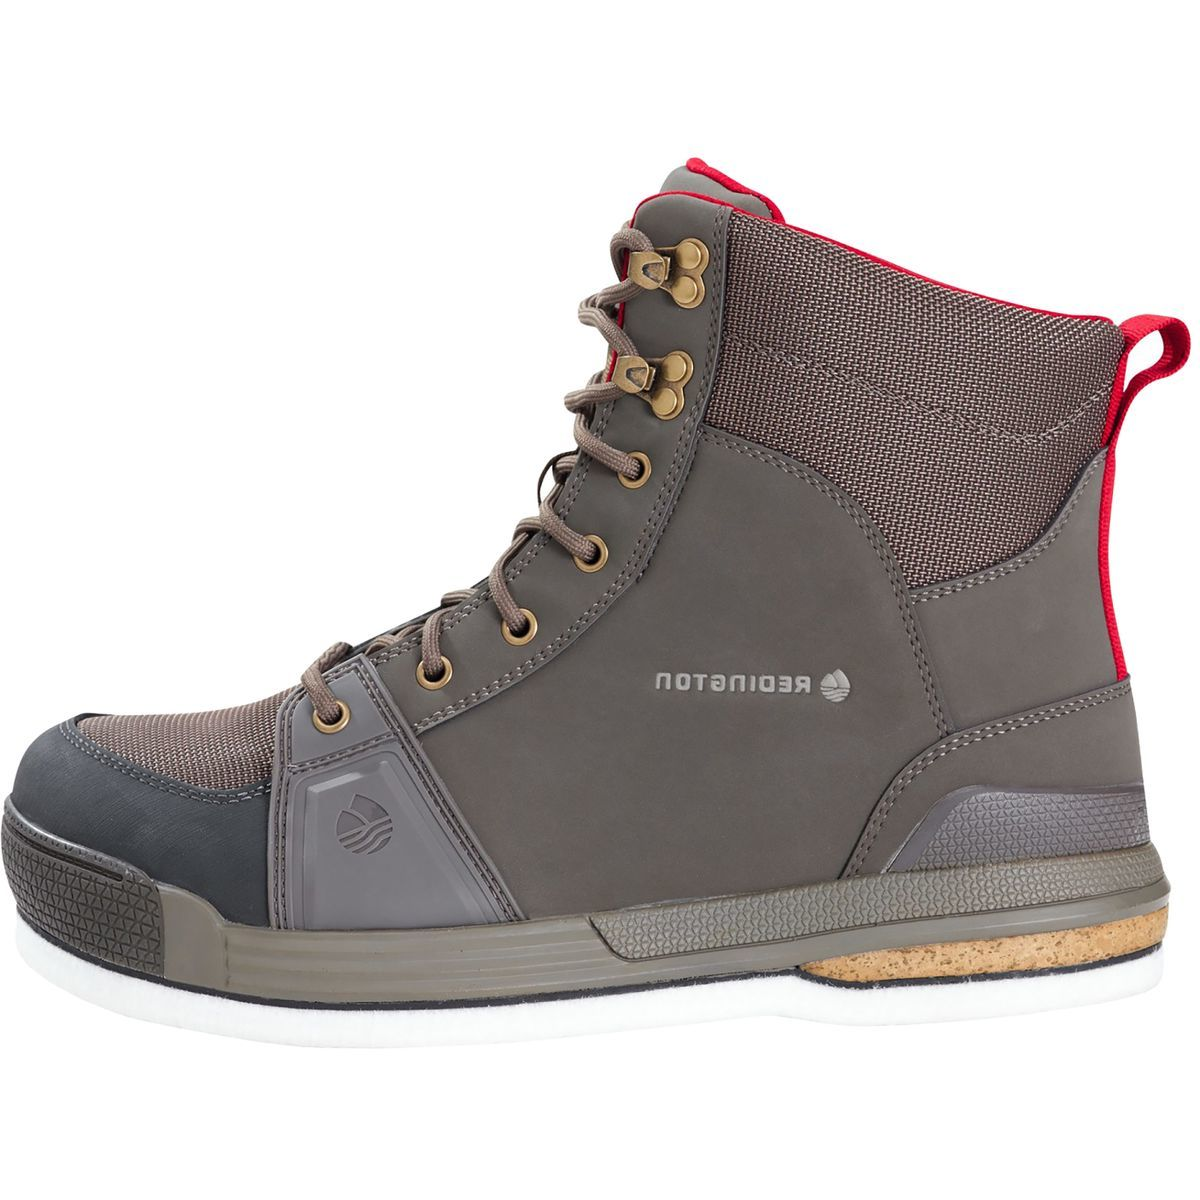 Redington Prowler Felt Boot - Men's